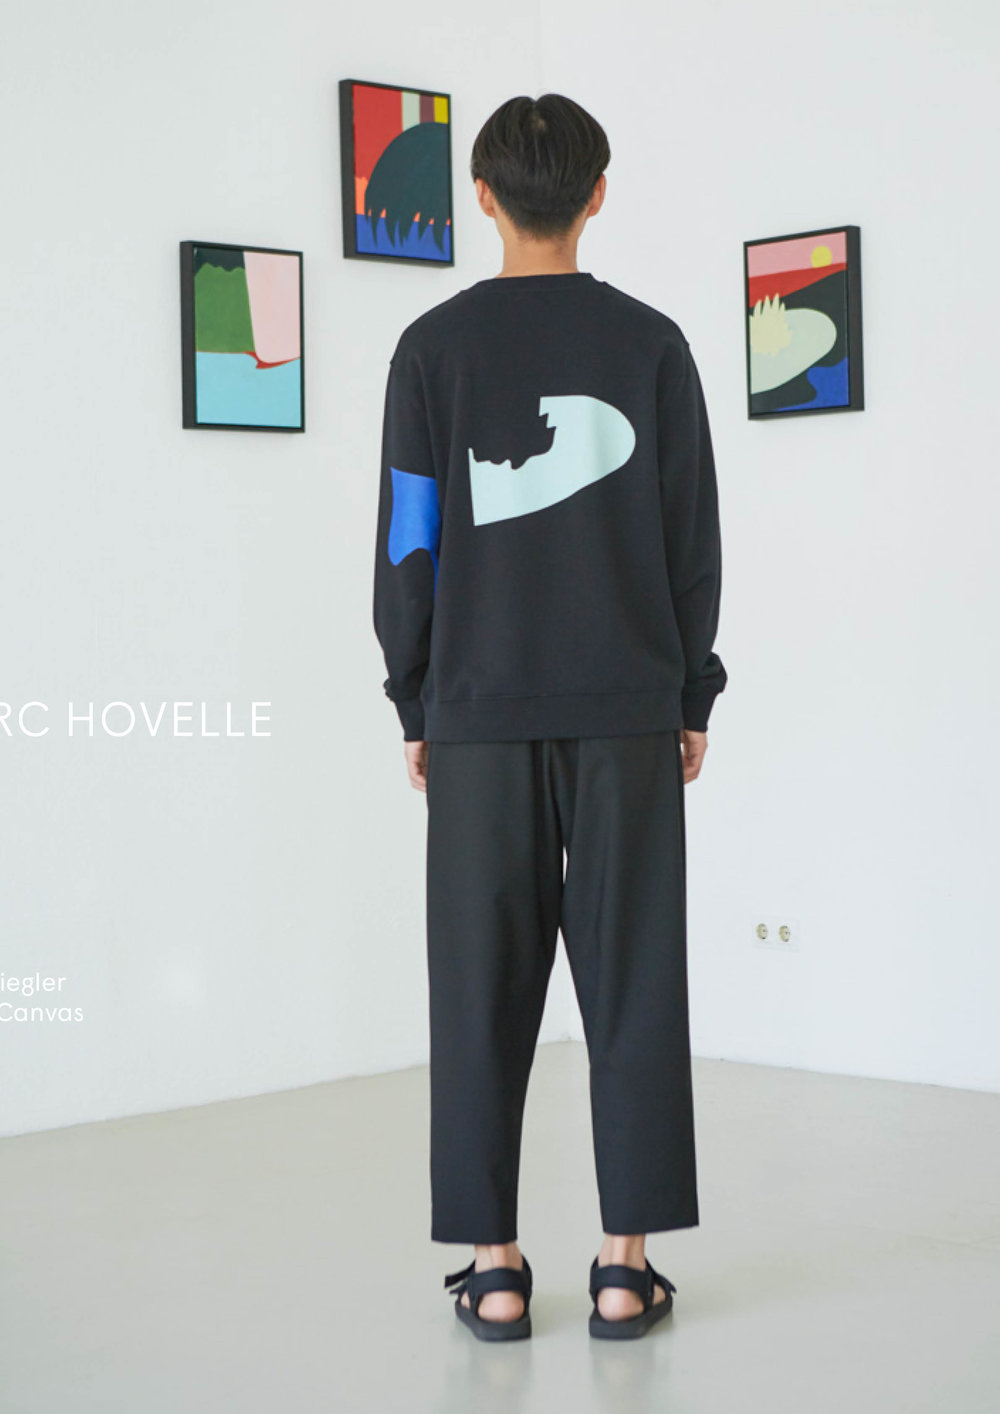 Ashley Marc Hovelle SS19 Lookbook final89.jpg